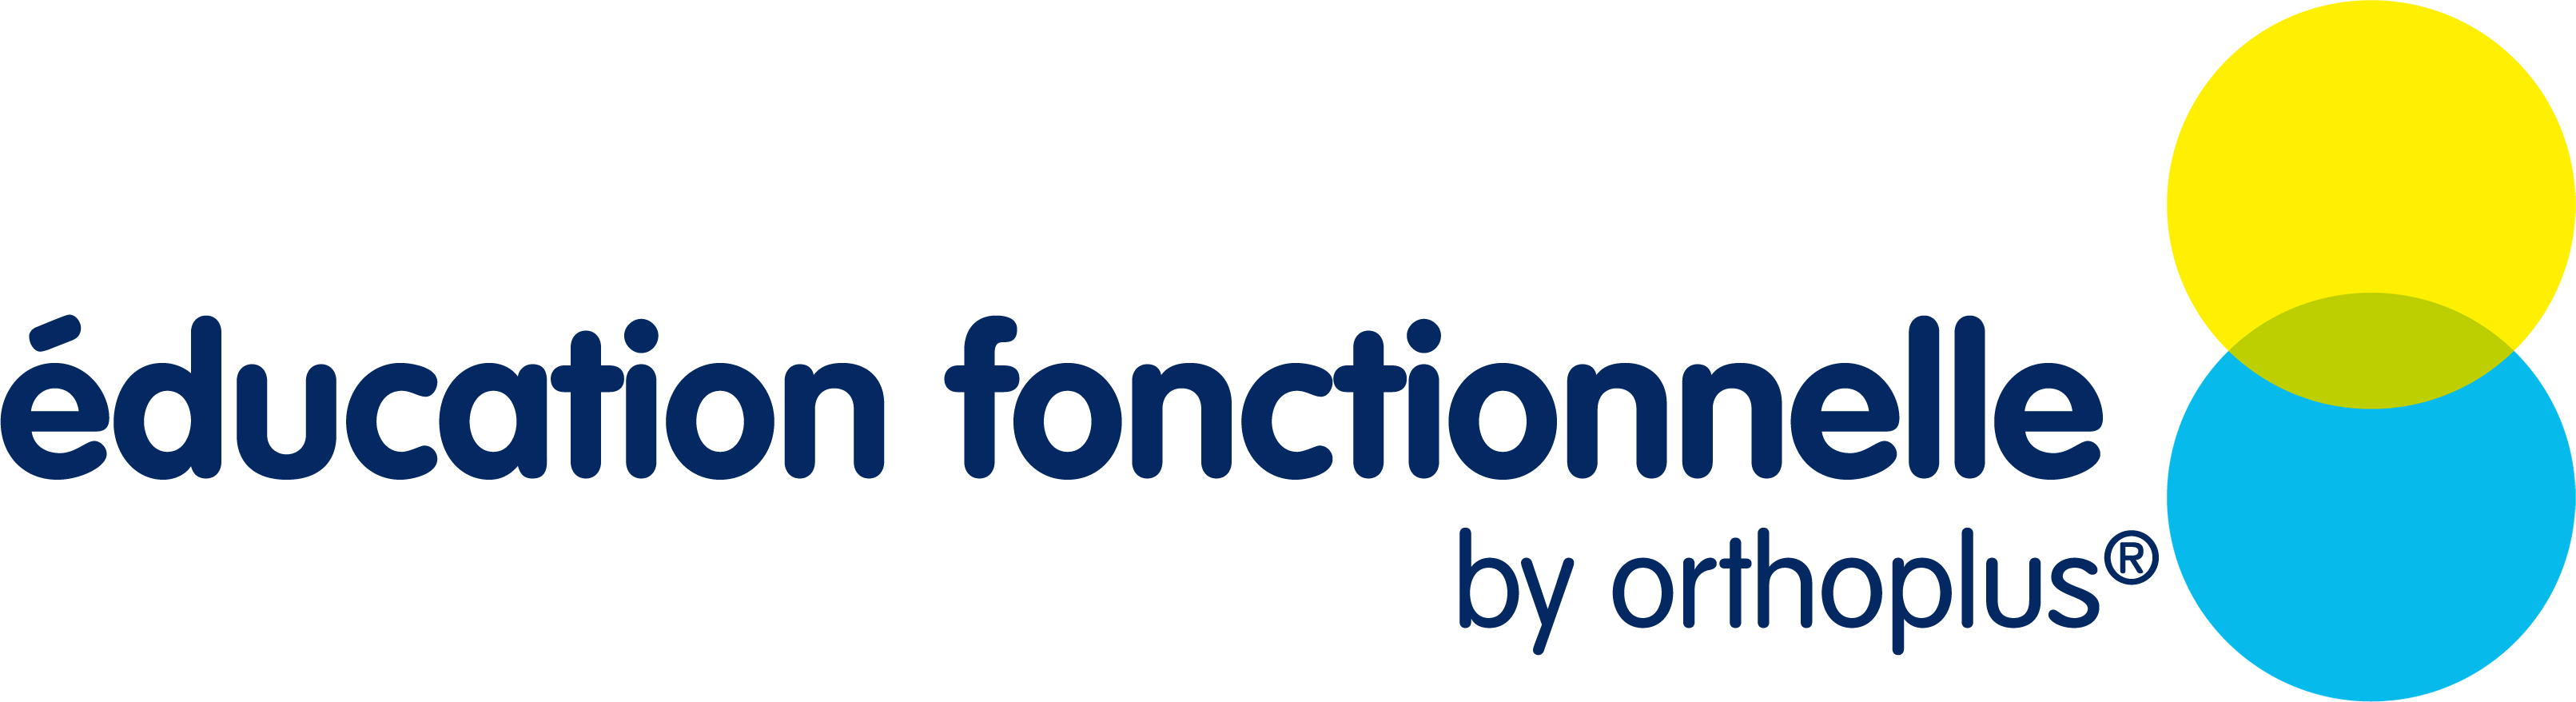 Logo education fonctionnelle